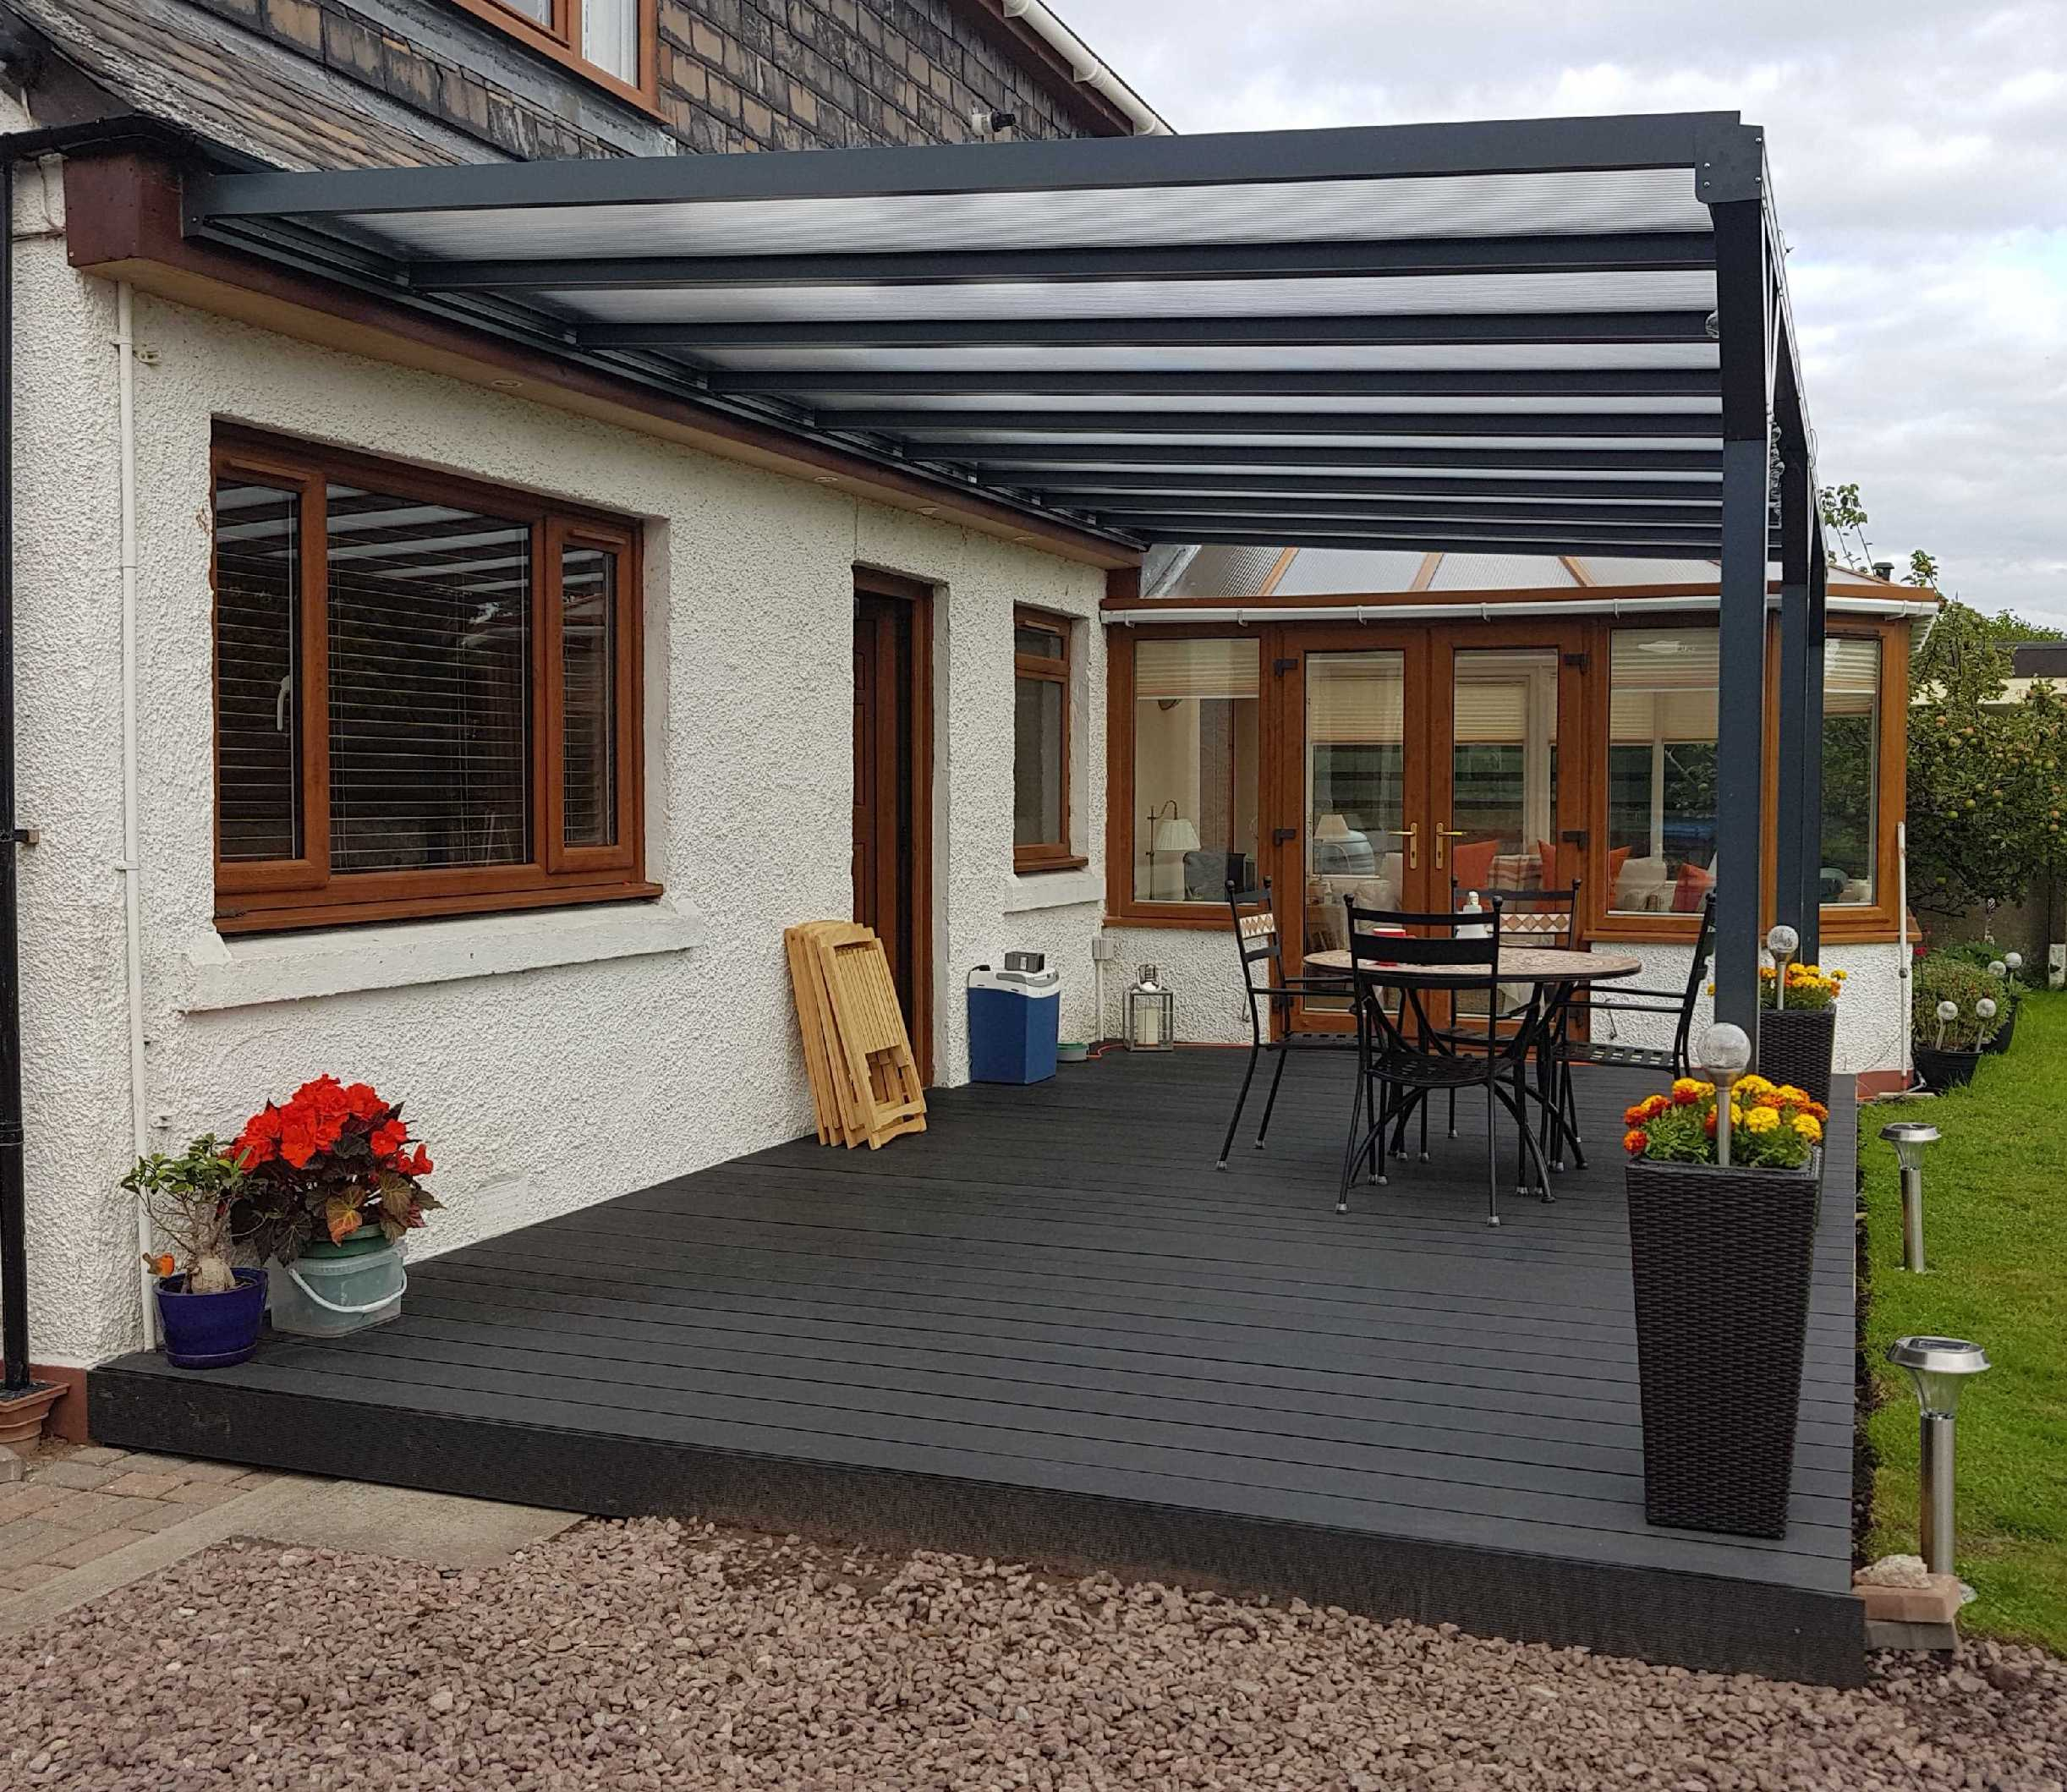 Wall-Mounted Lean-To Canopy in Anthracite Grey, Glass Clear 6mm Plate Polycarbonate Glazing